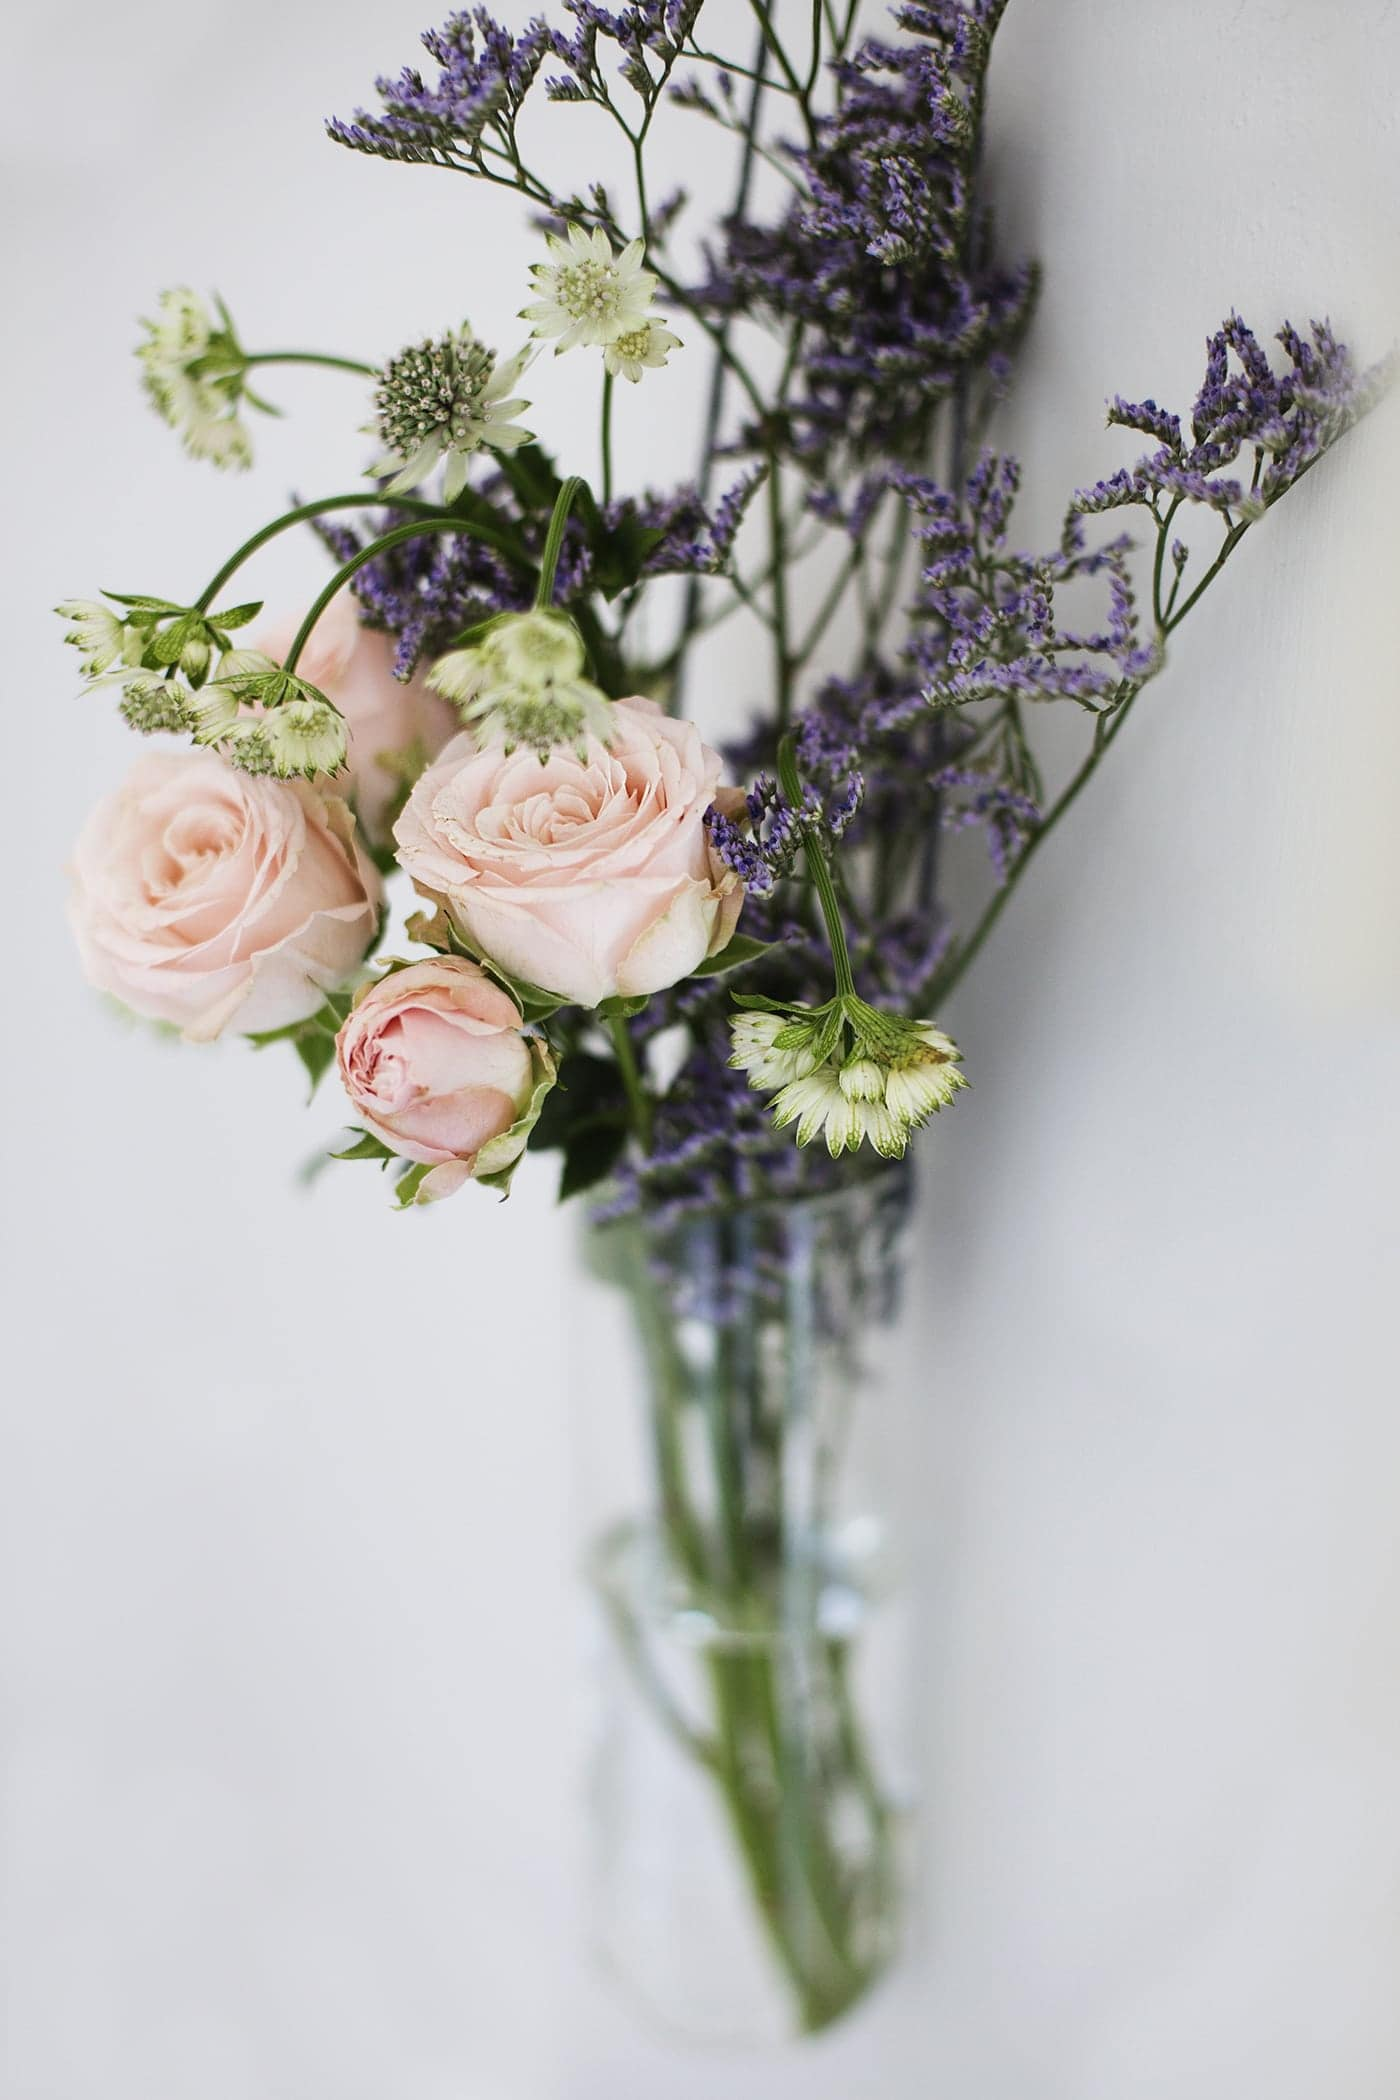 styling the seasons march | posies | hanging flowers